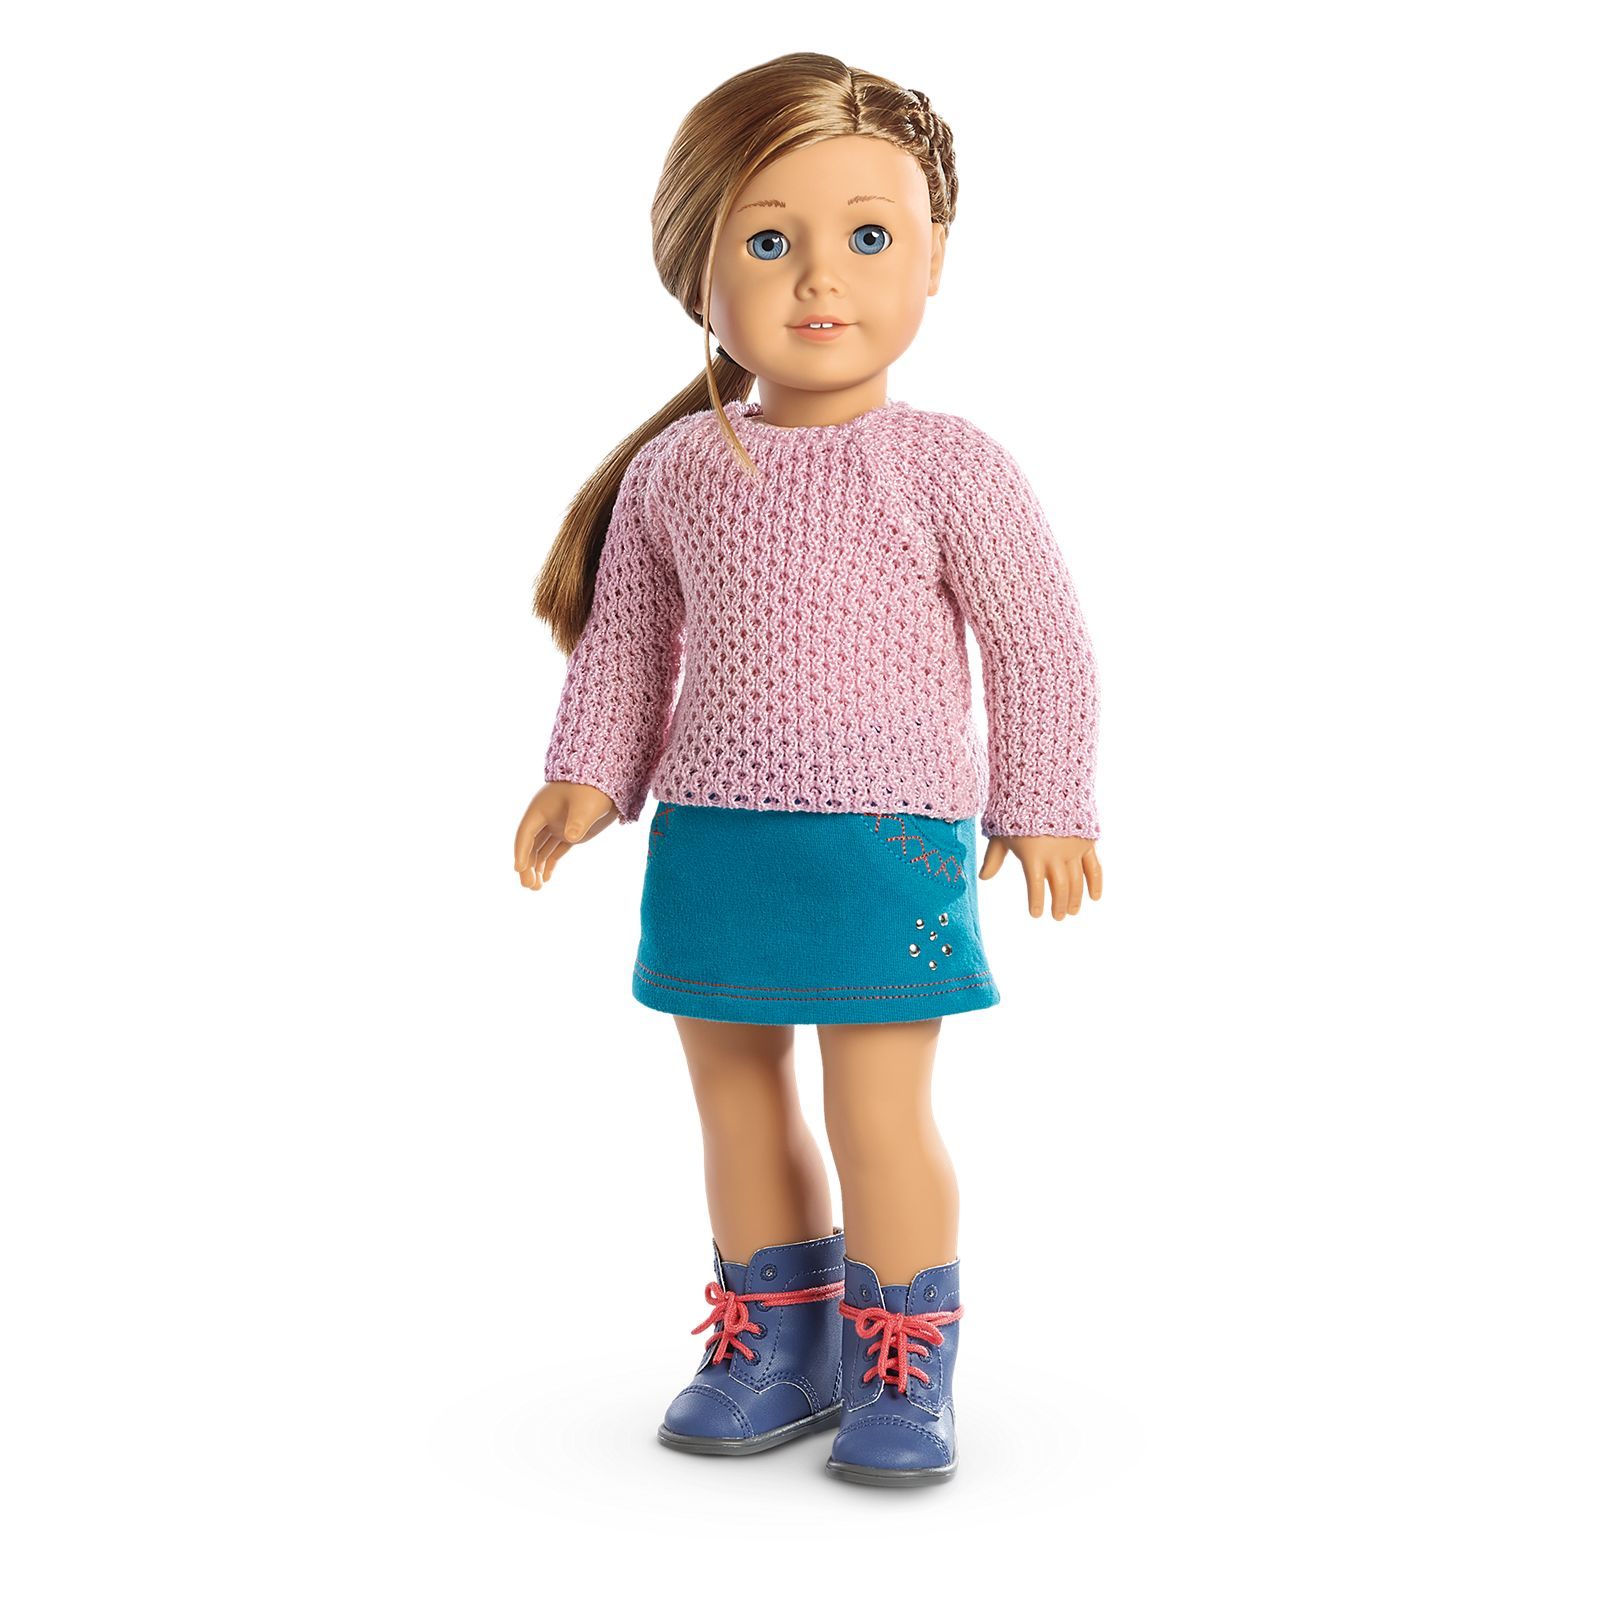 "Turquoise//White Stripe Knit Sweater for 18/"" Doll Clothes American Girl"